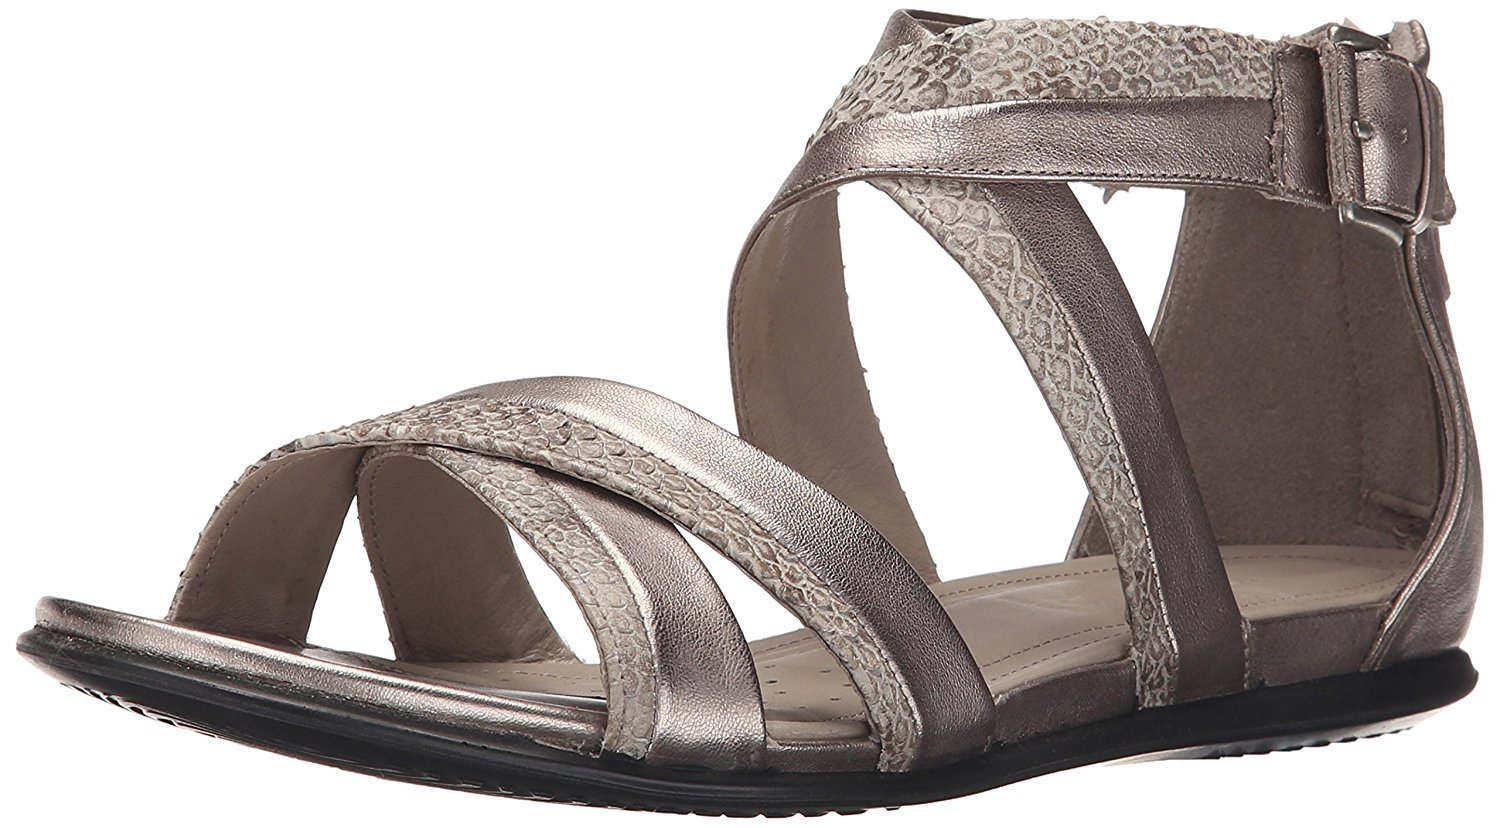 ECCO Womens touch sandal Open Toe Casual Slide Sandals Moon Rock Size 4.0